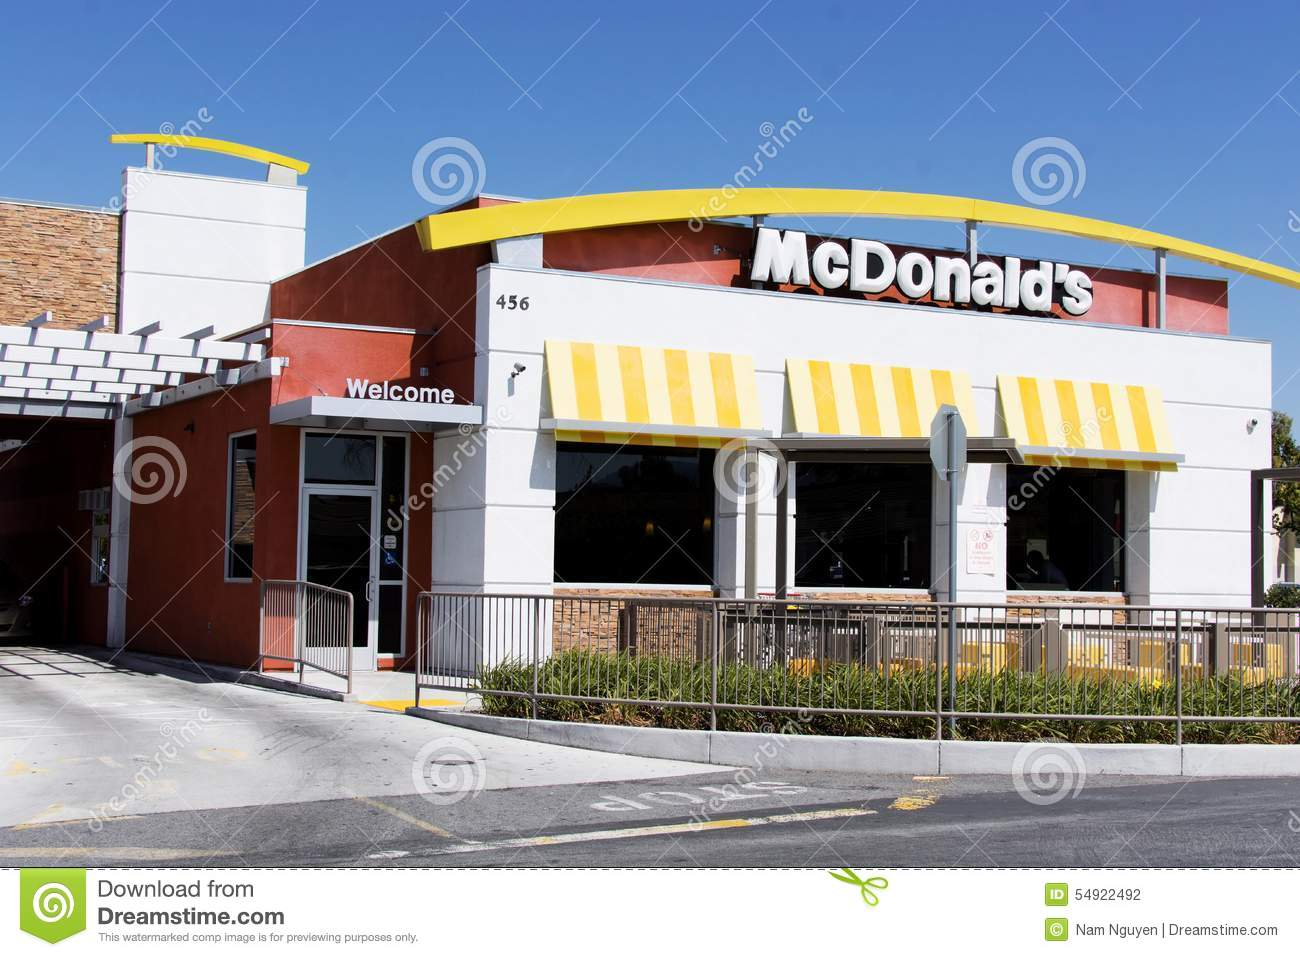 mcdonald's serving fast food Since taking over as ceo of mcdonald's in march 2015, steve easterbrook has set his sights on the company's food on his watch the fast food behemoth has committed to serving only cage-free .